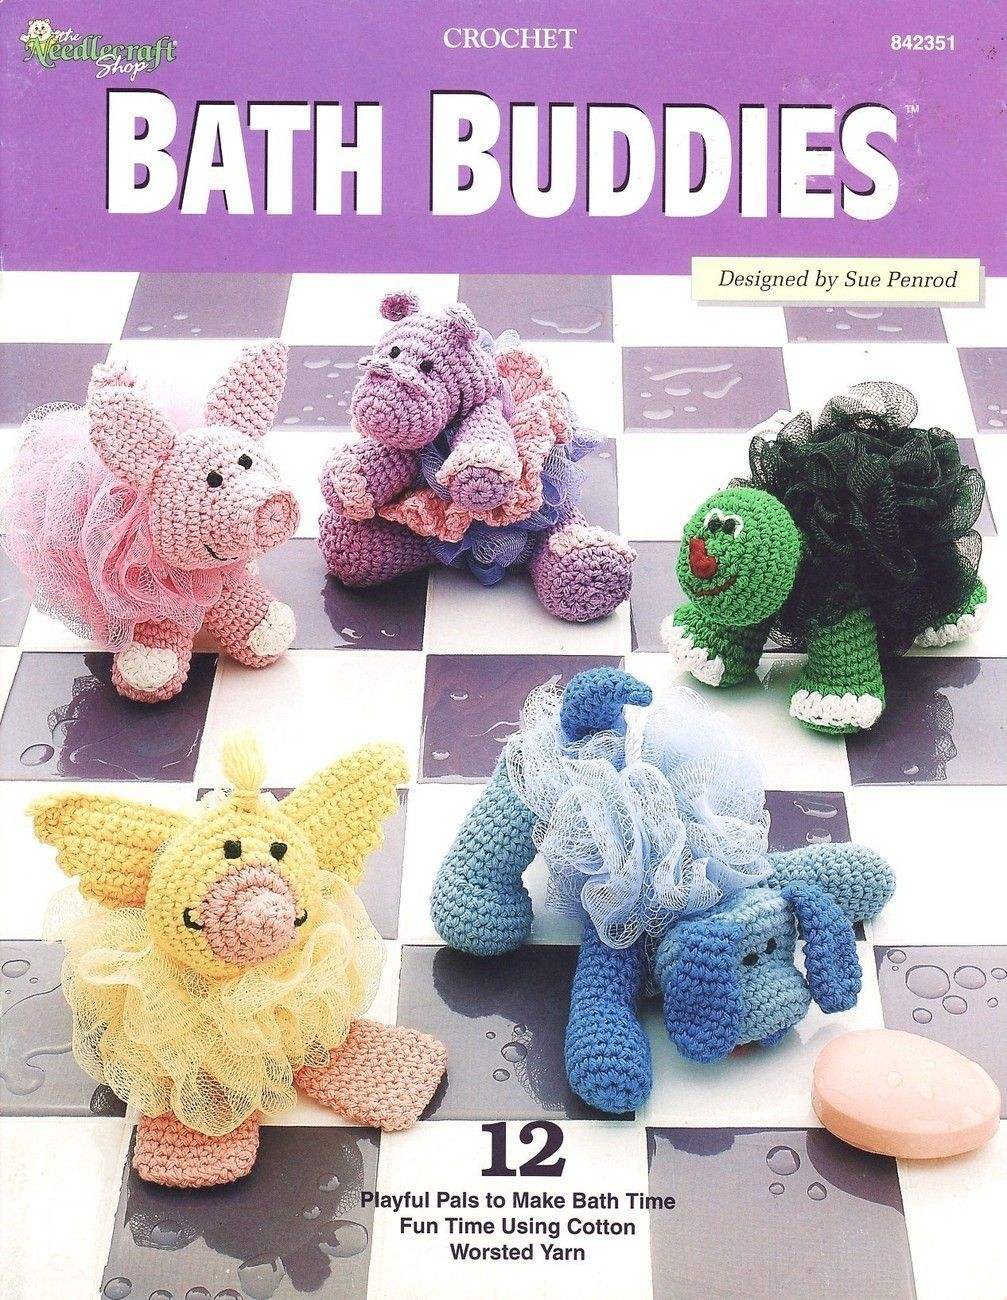 Bath buddies crochet patterns book animals toys pets bath buddies crochet patterns book animals toys pets bankloansurffo Image collections